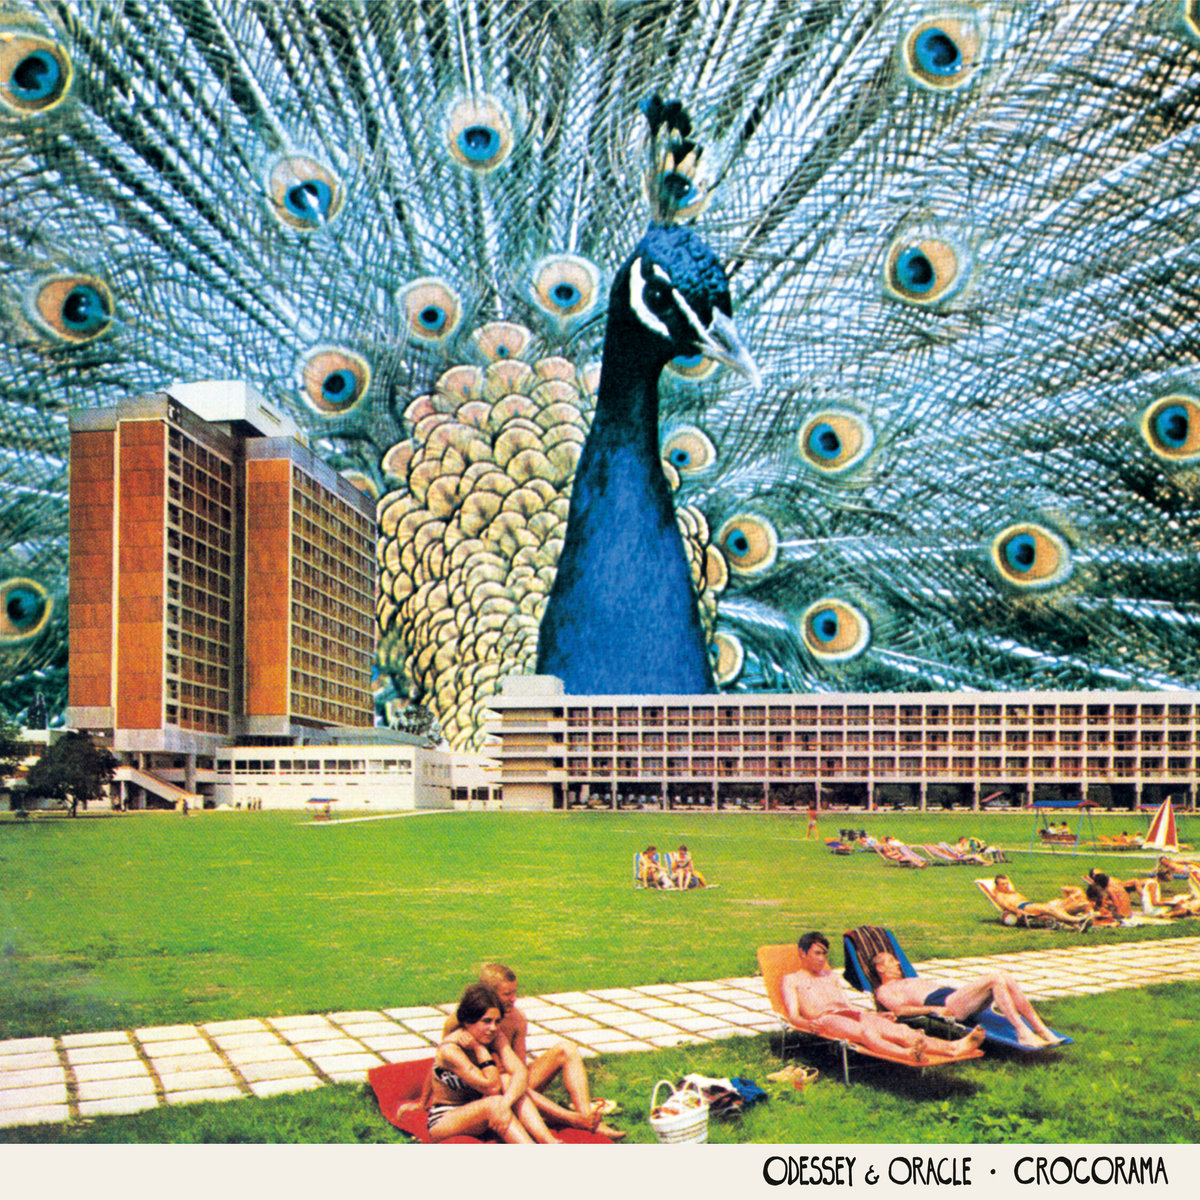 Odessey & Oracle - Crocorama